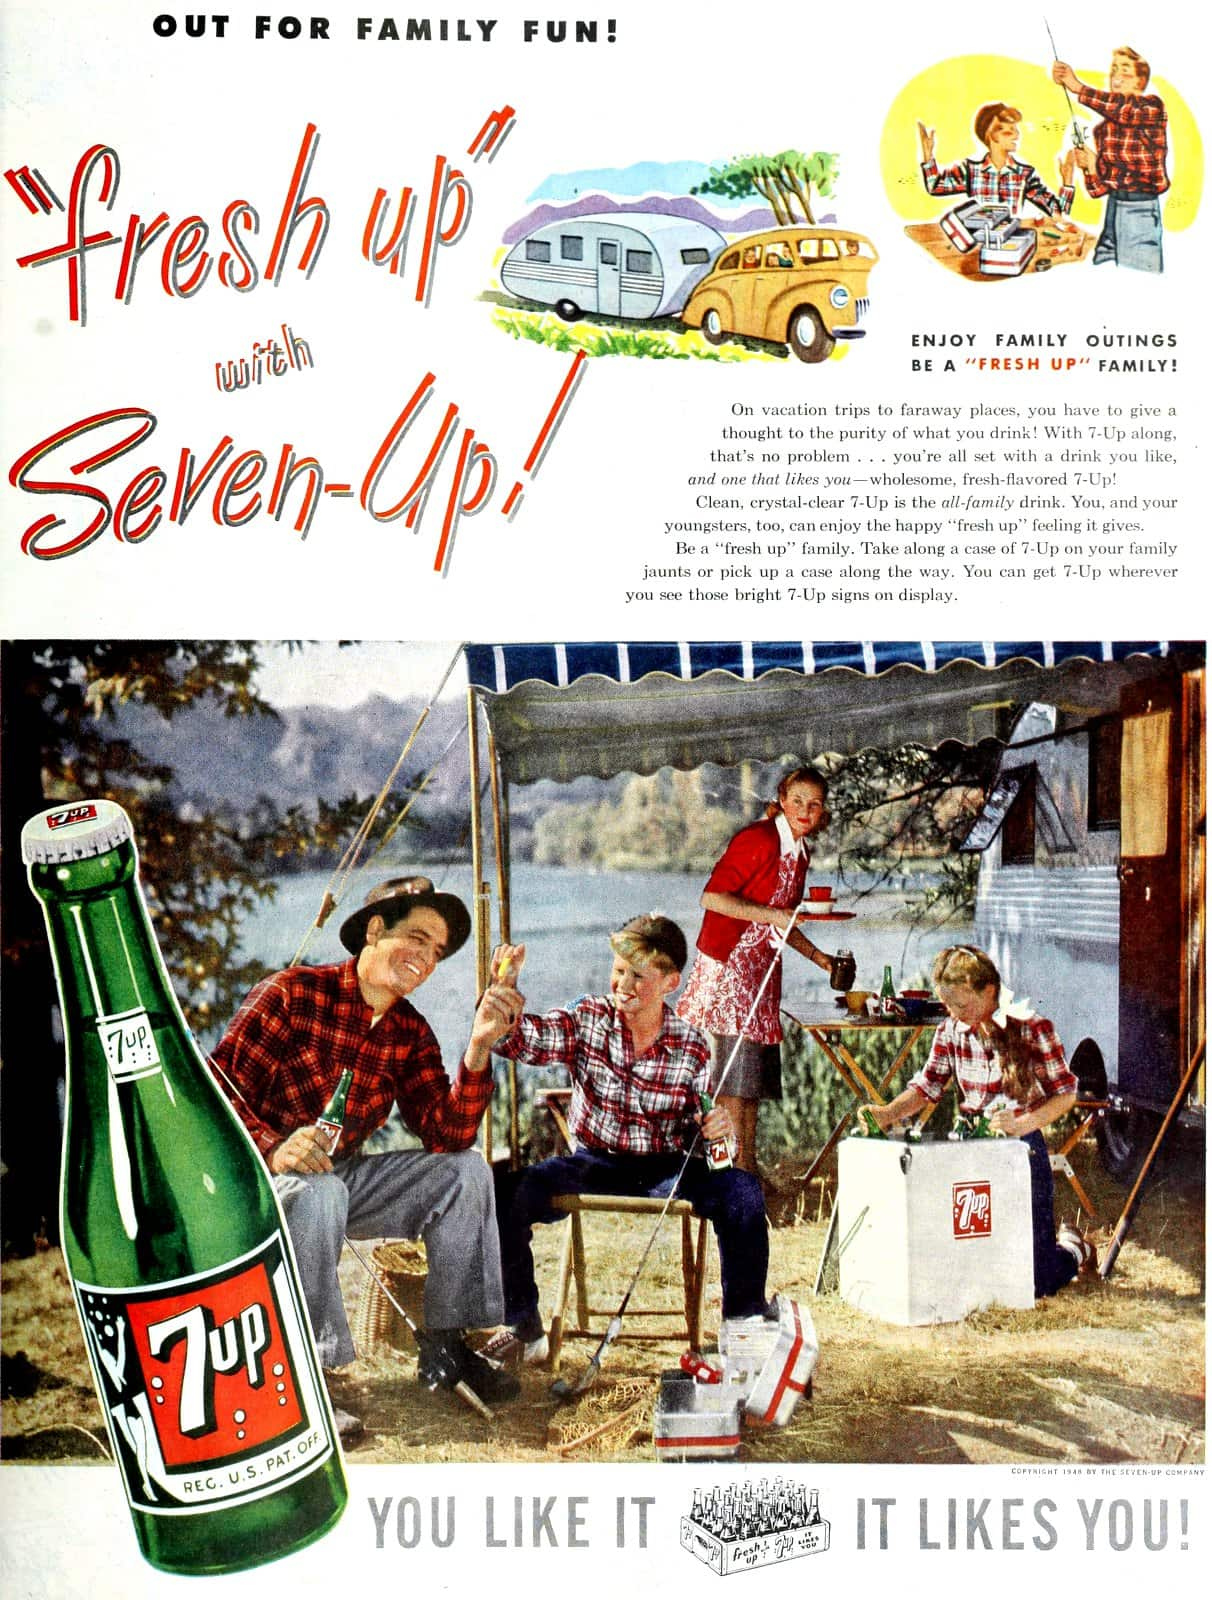 Enjoy family outings with 7UP - Be a fresh up family! (1948 )